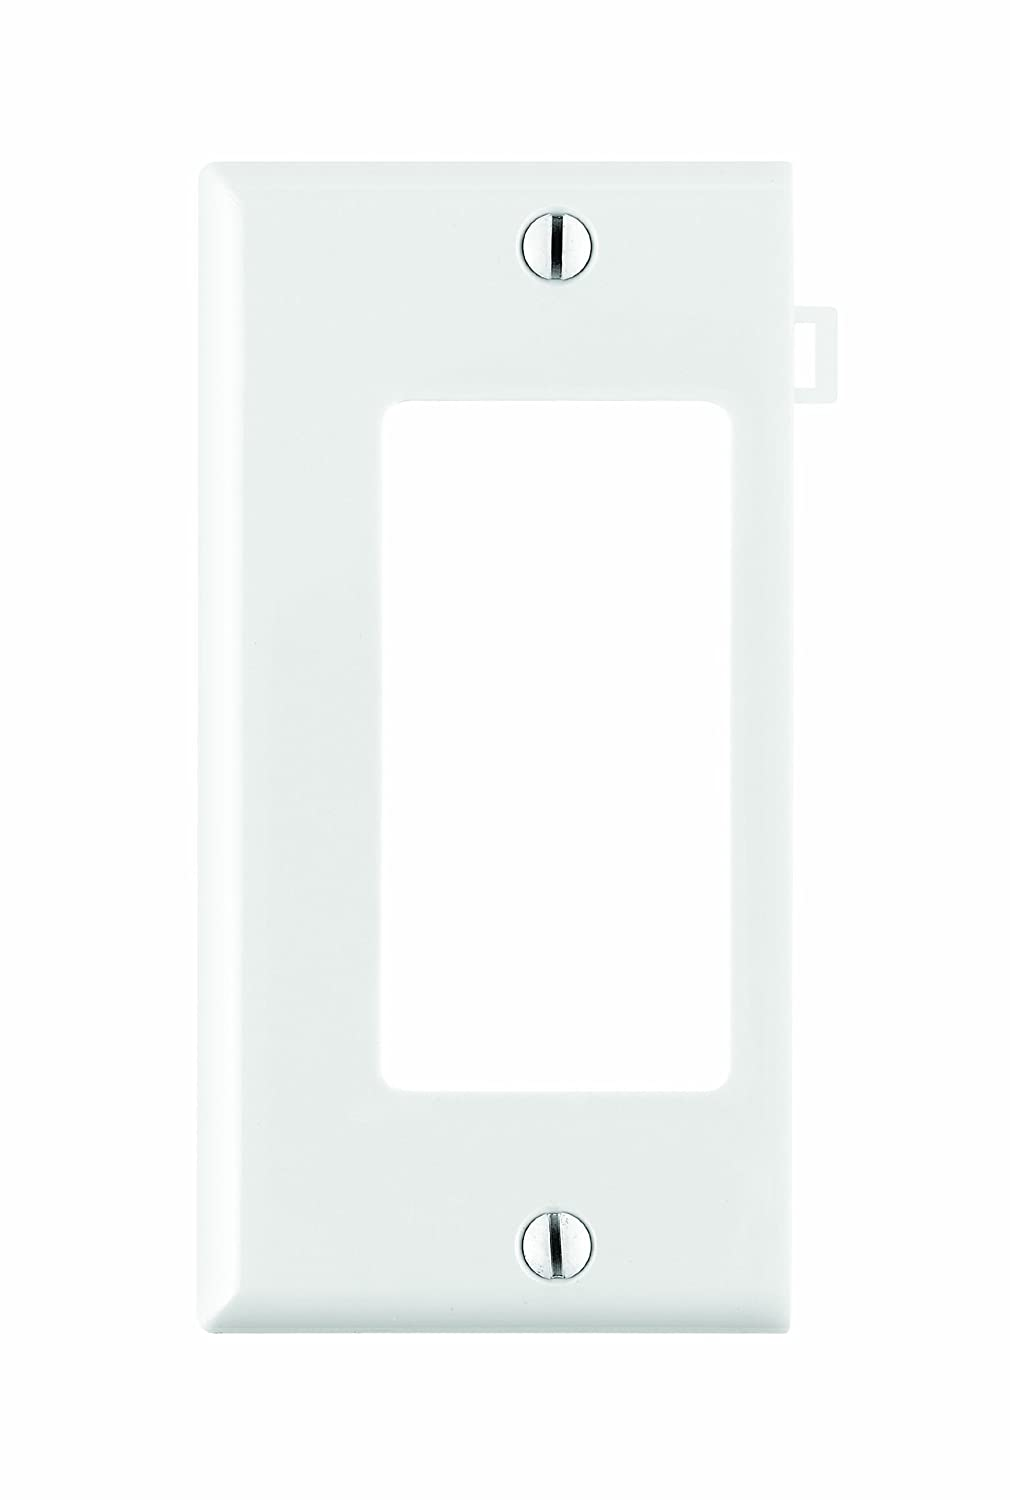 Leviton PSE26-W 1-Gang Decora/GFCI Device Wallplate, Sectional, Thermoplastic Nylon, Device Mount, End Panel, White